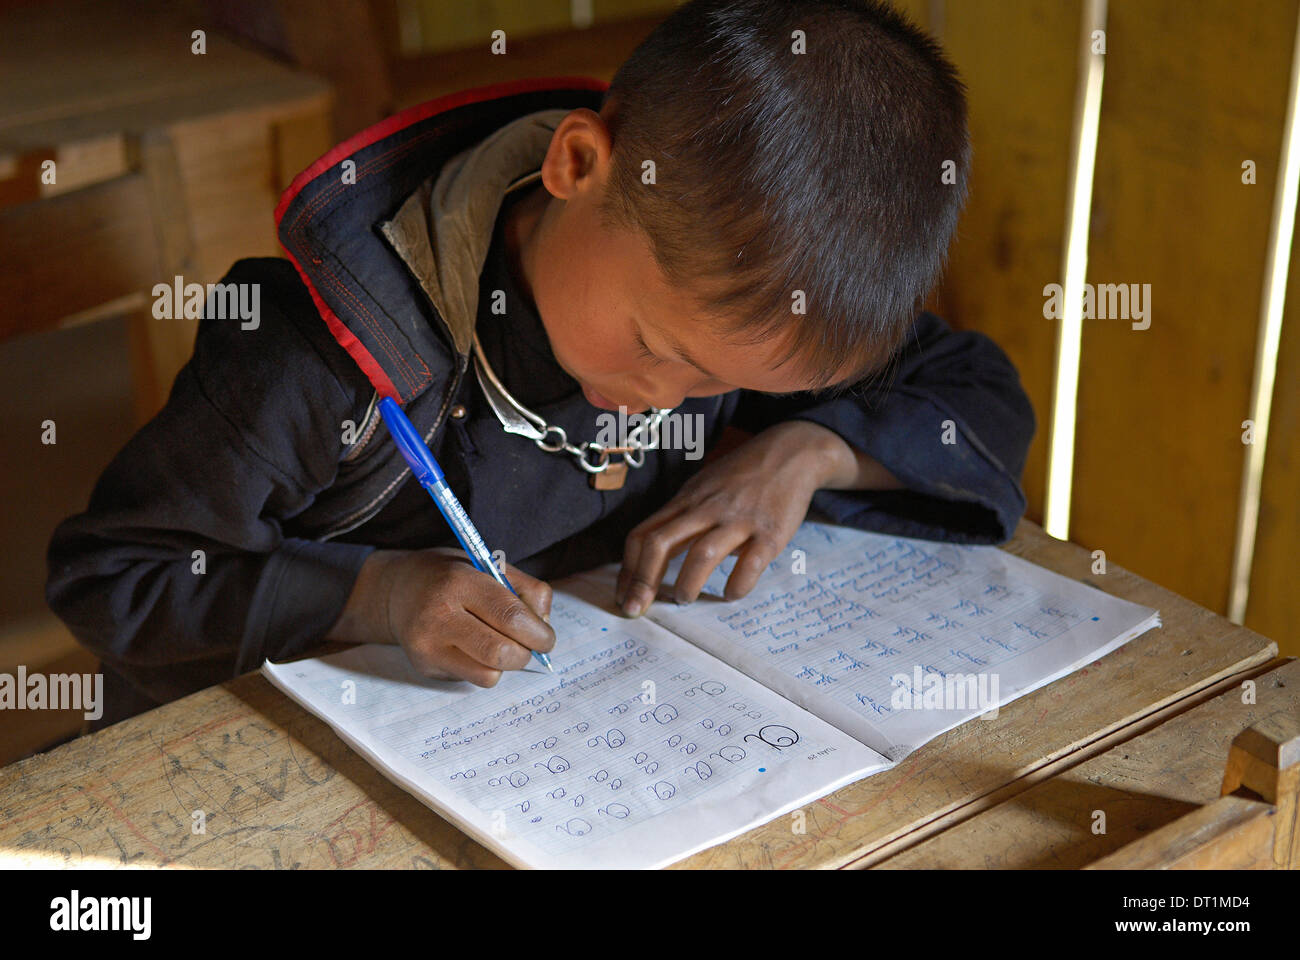 Black Hmong ethnic group boy at school, Sapa area, Vietnam, Indochina, Southeast Asia, Asia - Stock Image